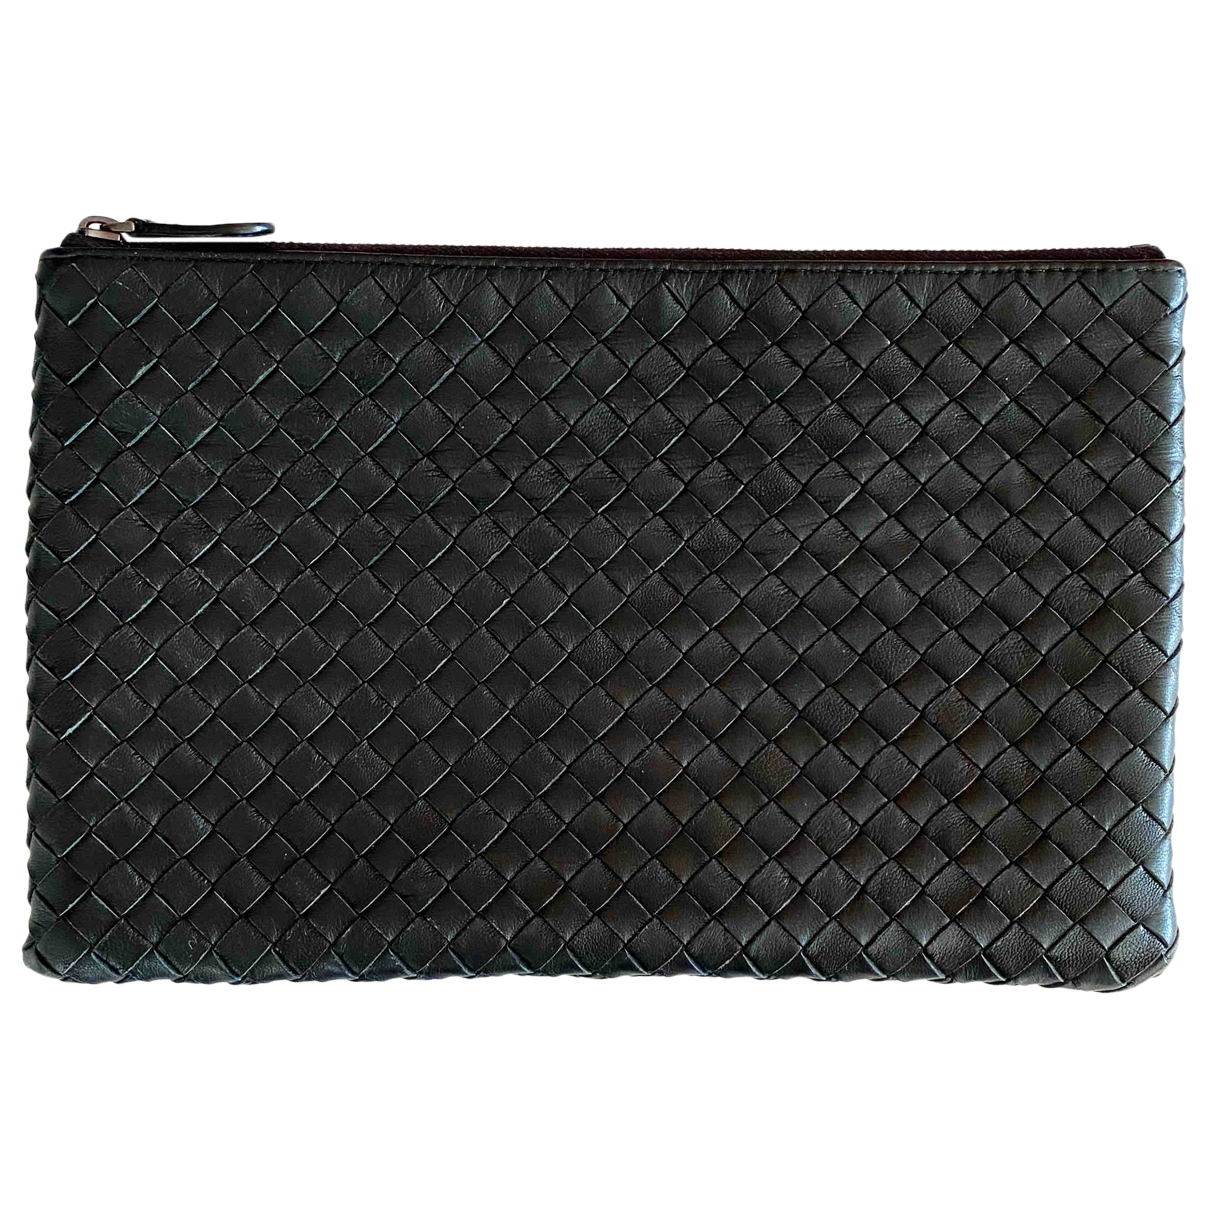 Bottega Veneta \N Clutch in  Schwarz Leder